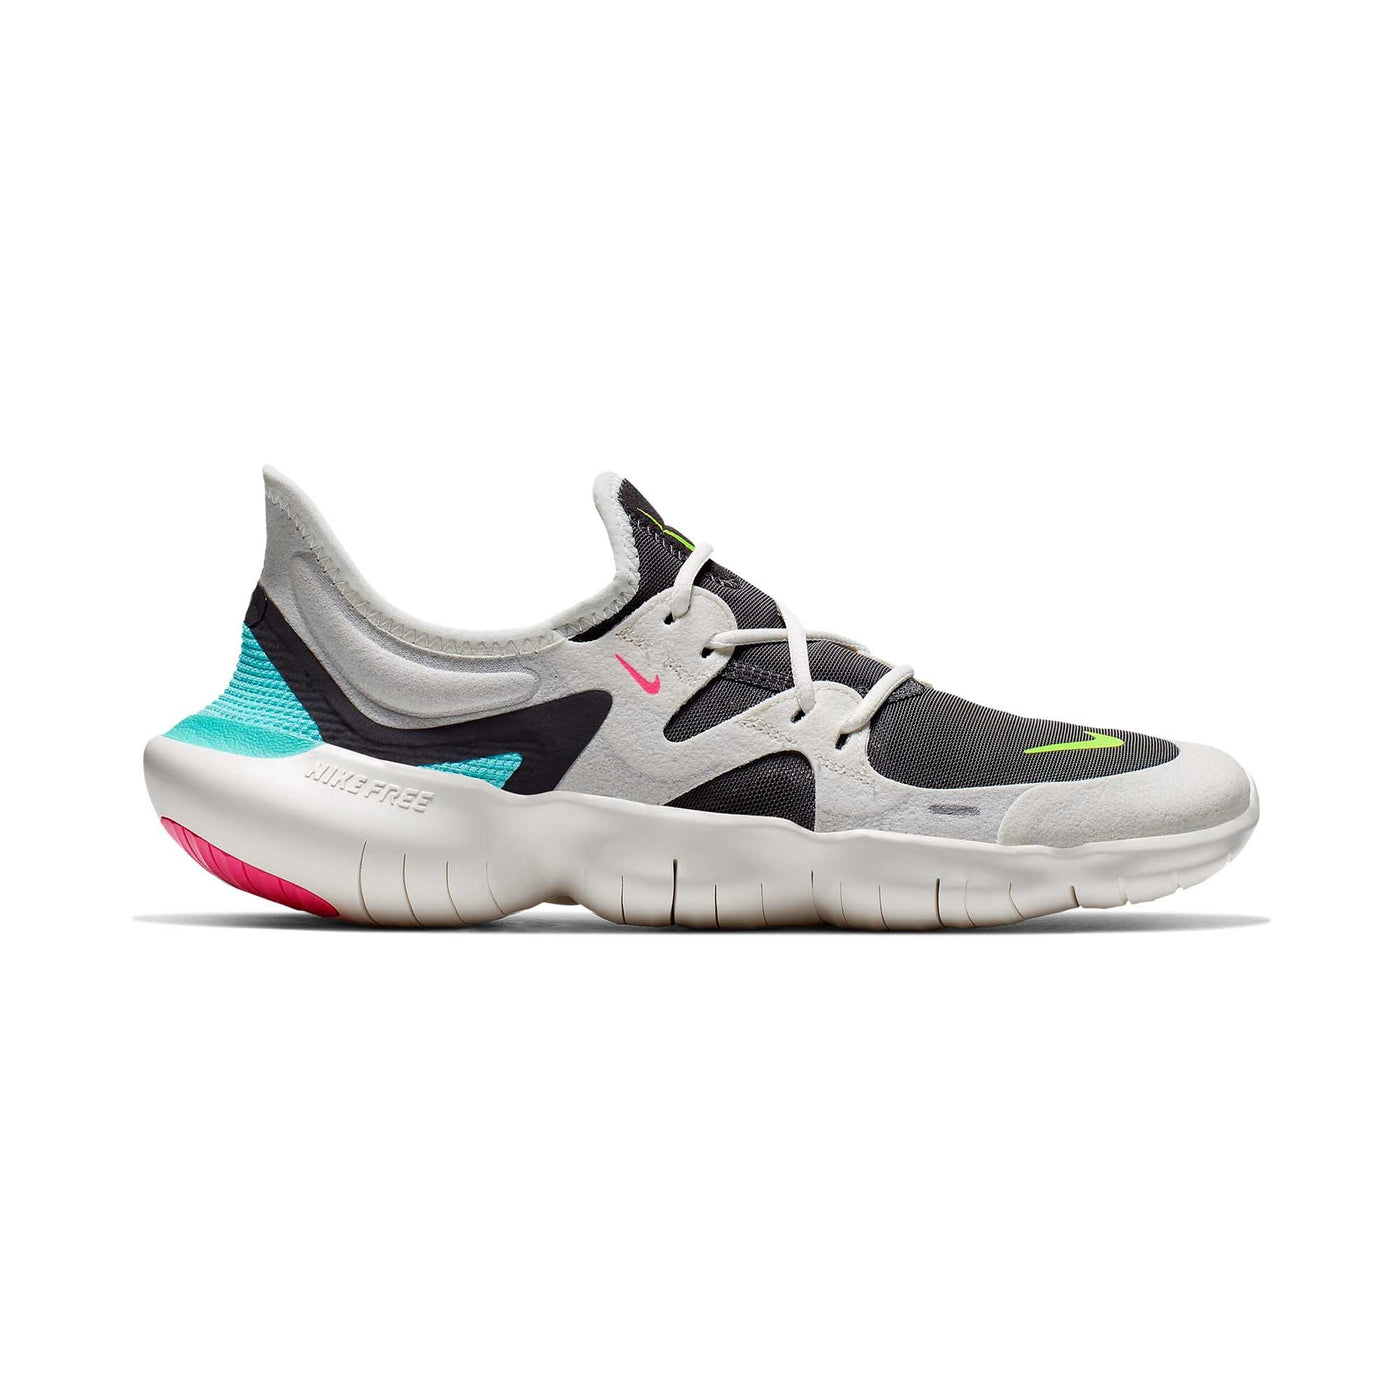 ad56eeaa62b Women - Free Run 5.0 Running Shoes